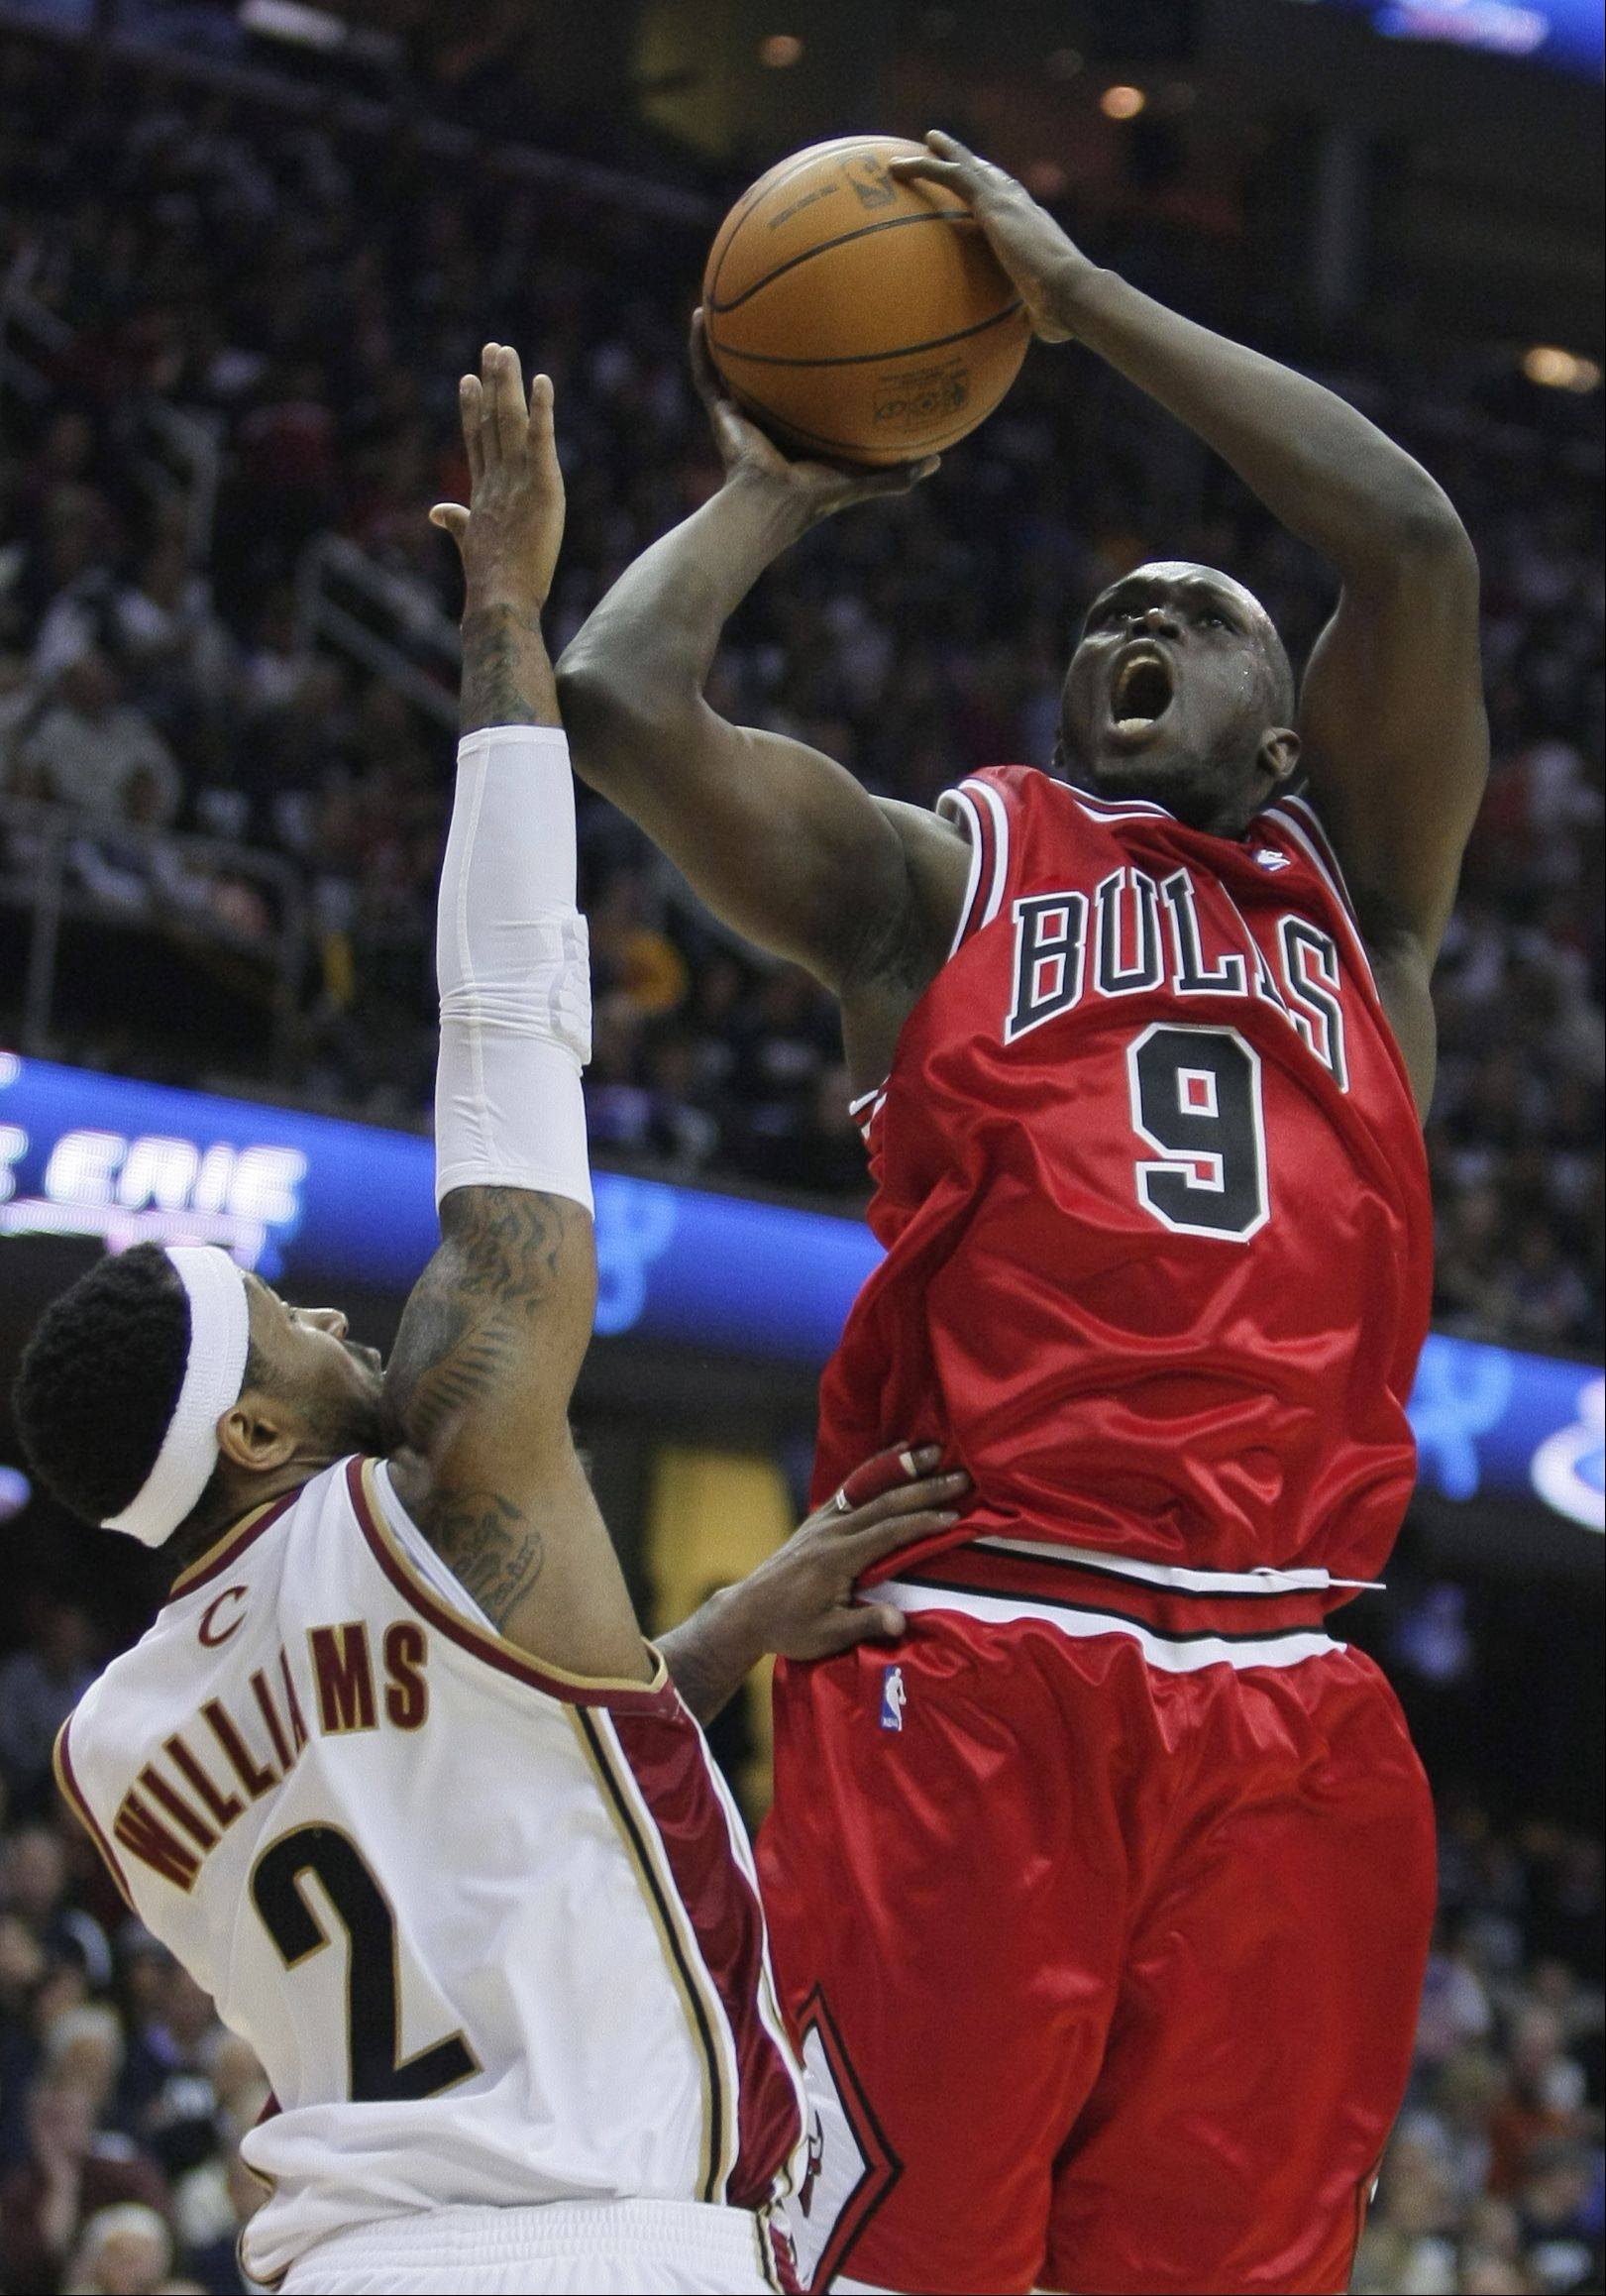 The Bulls� Luol Deng has struggled from 3-point range this season, going 1-for-12 from long range.